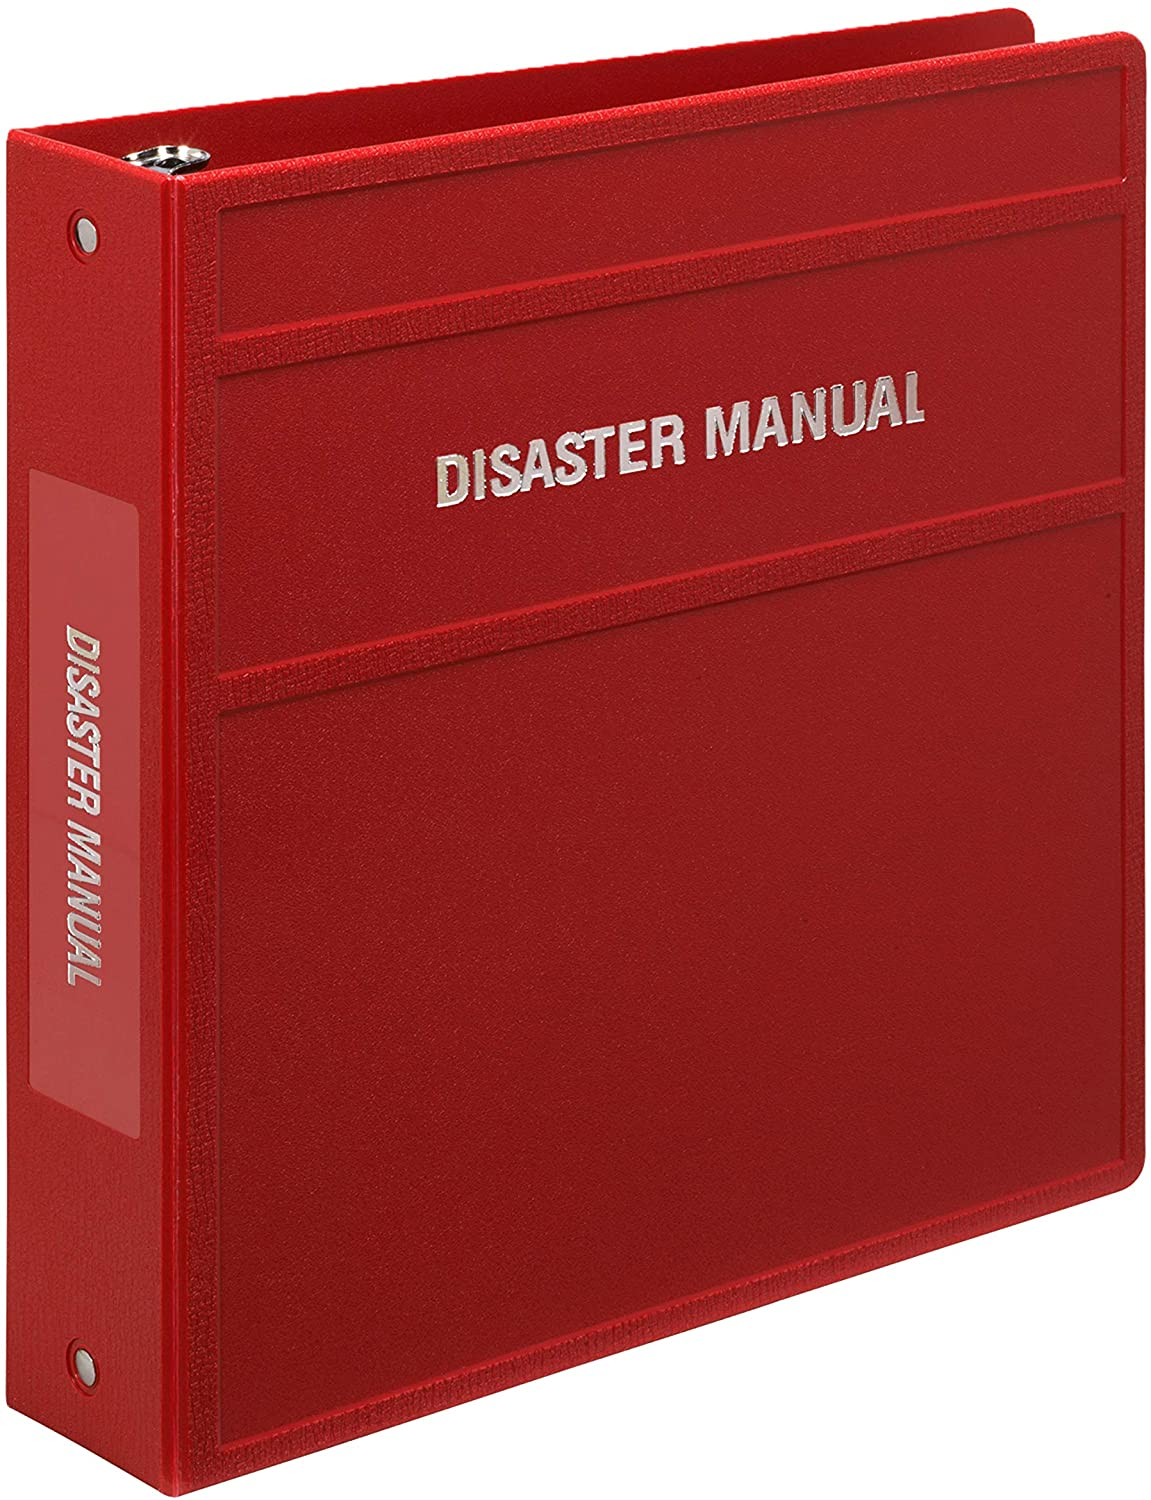 Carstens 2-Inch Heavy Duty 3-Ring Binder for Disaster Manuals – Side Opening, Brick Red